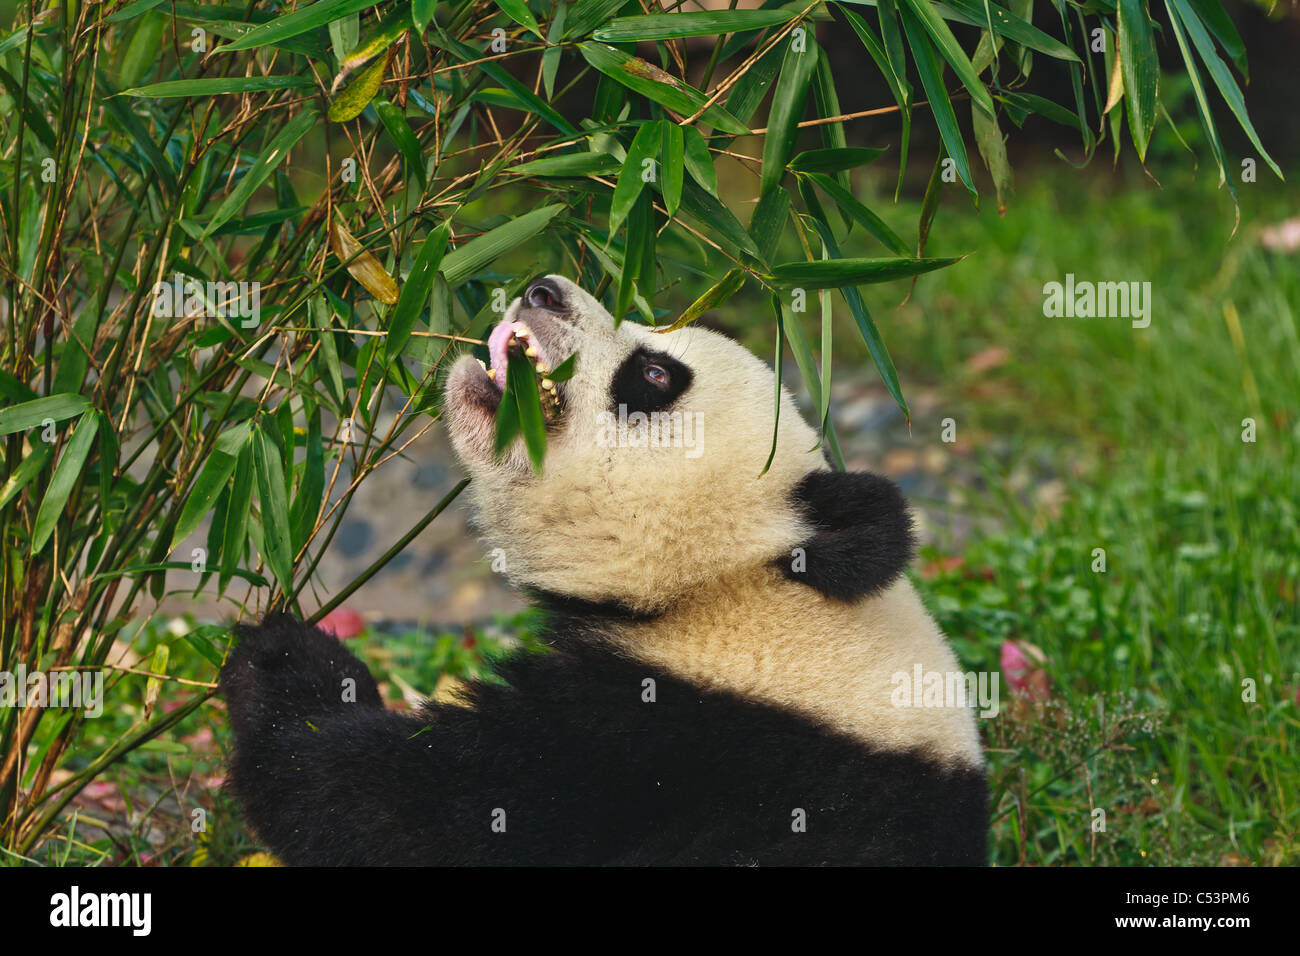 Panda bear eating bamboo at Chengdu Giant Panda Breeding Center Sichuan China - Stock Image